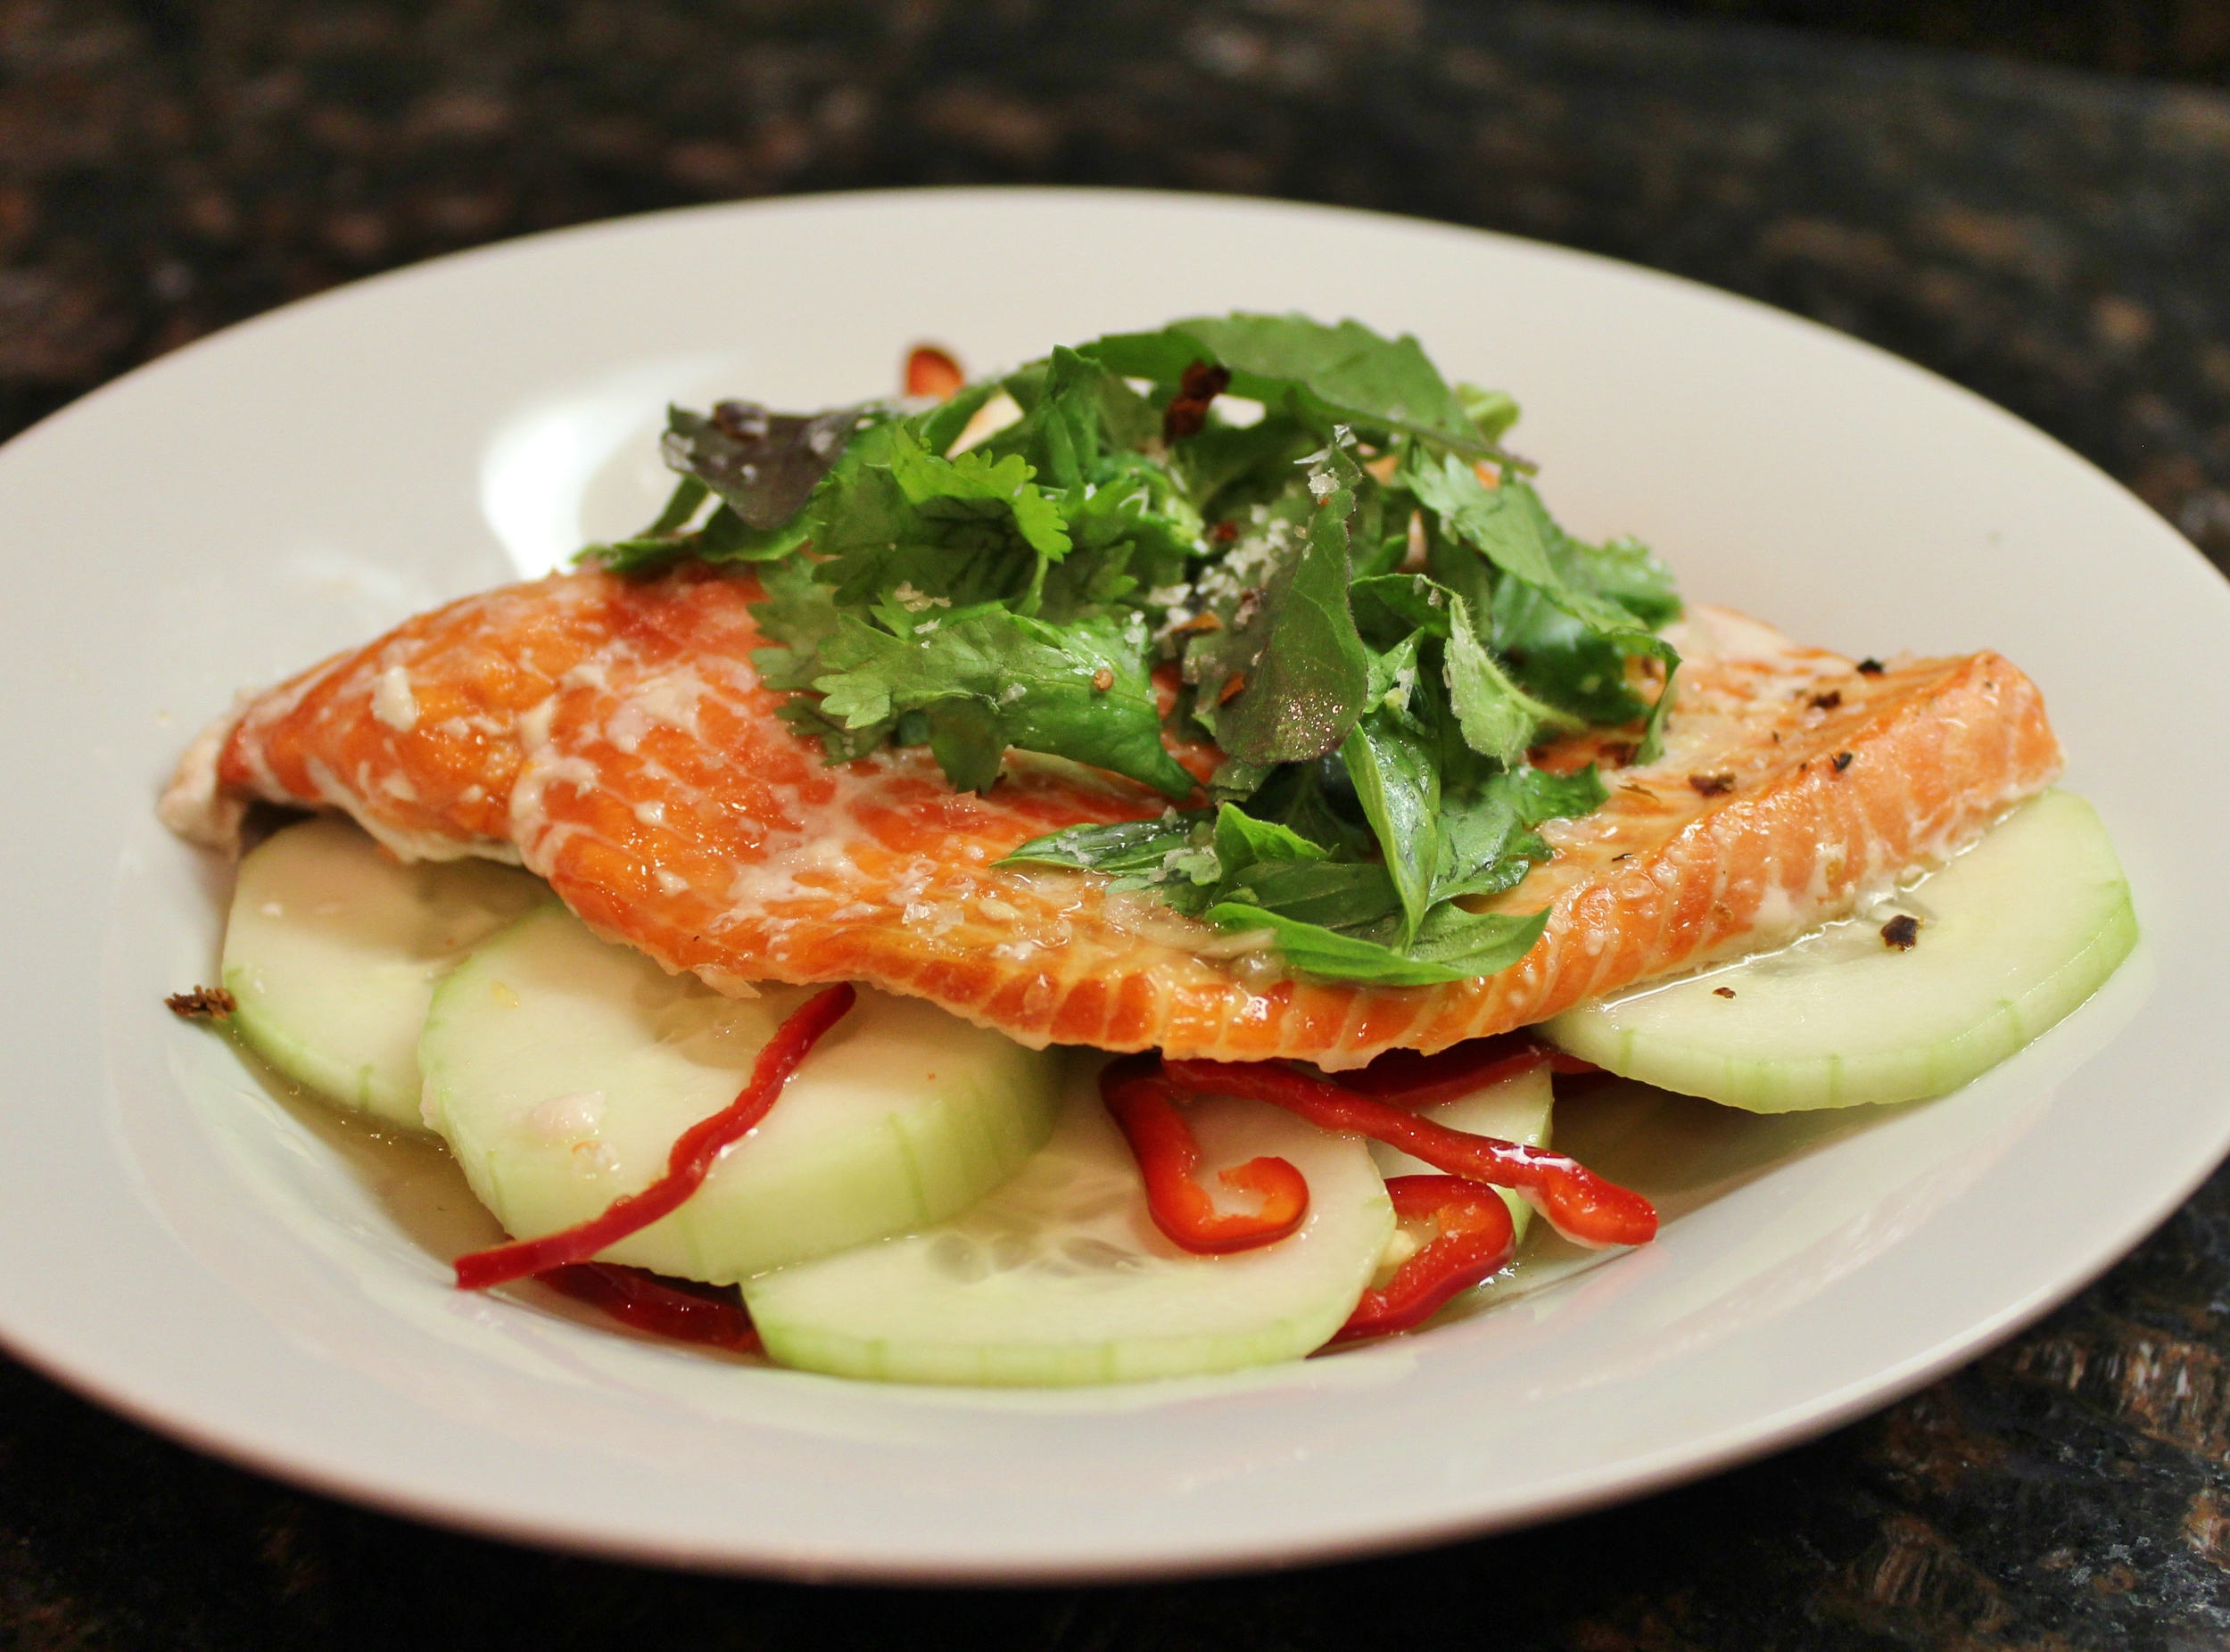 Sockeye salmon with spicy cucumbers and nuoc cham